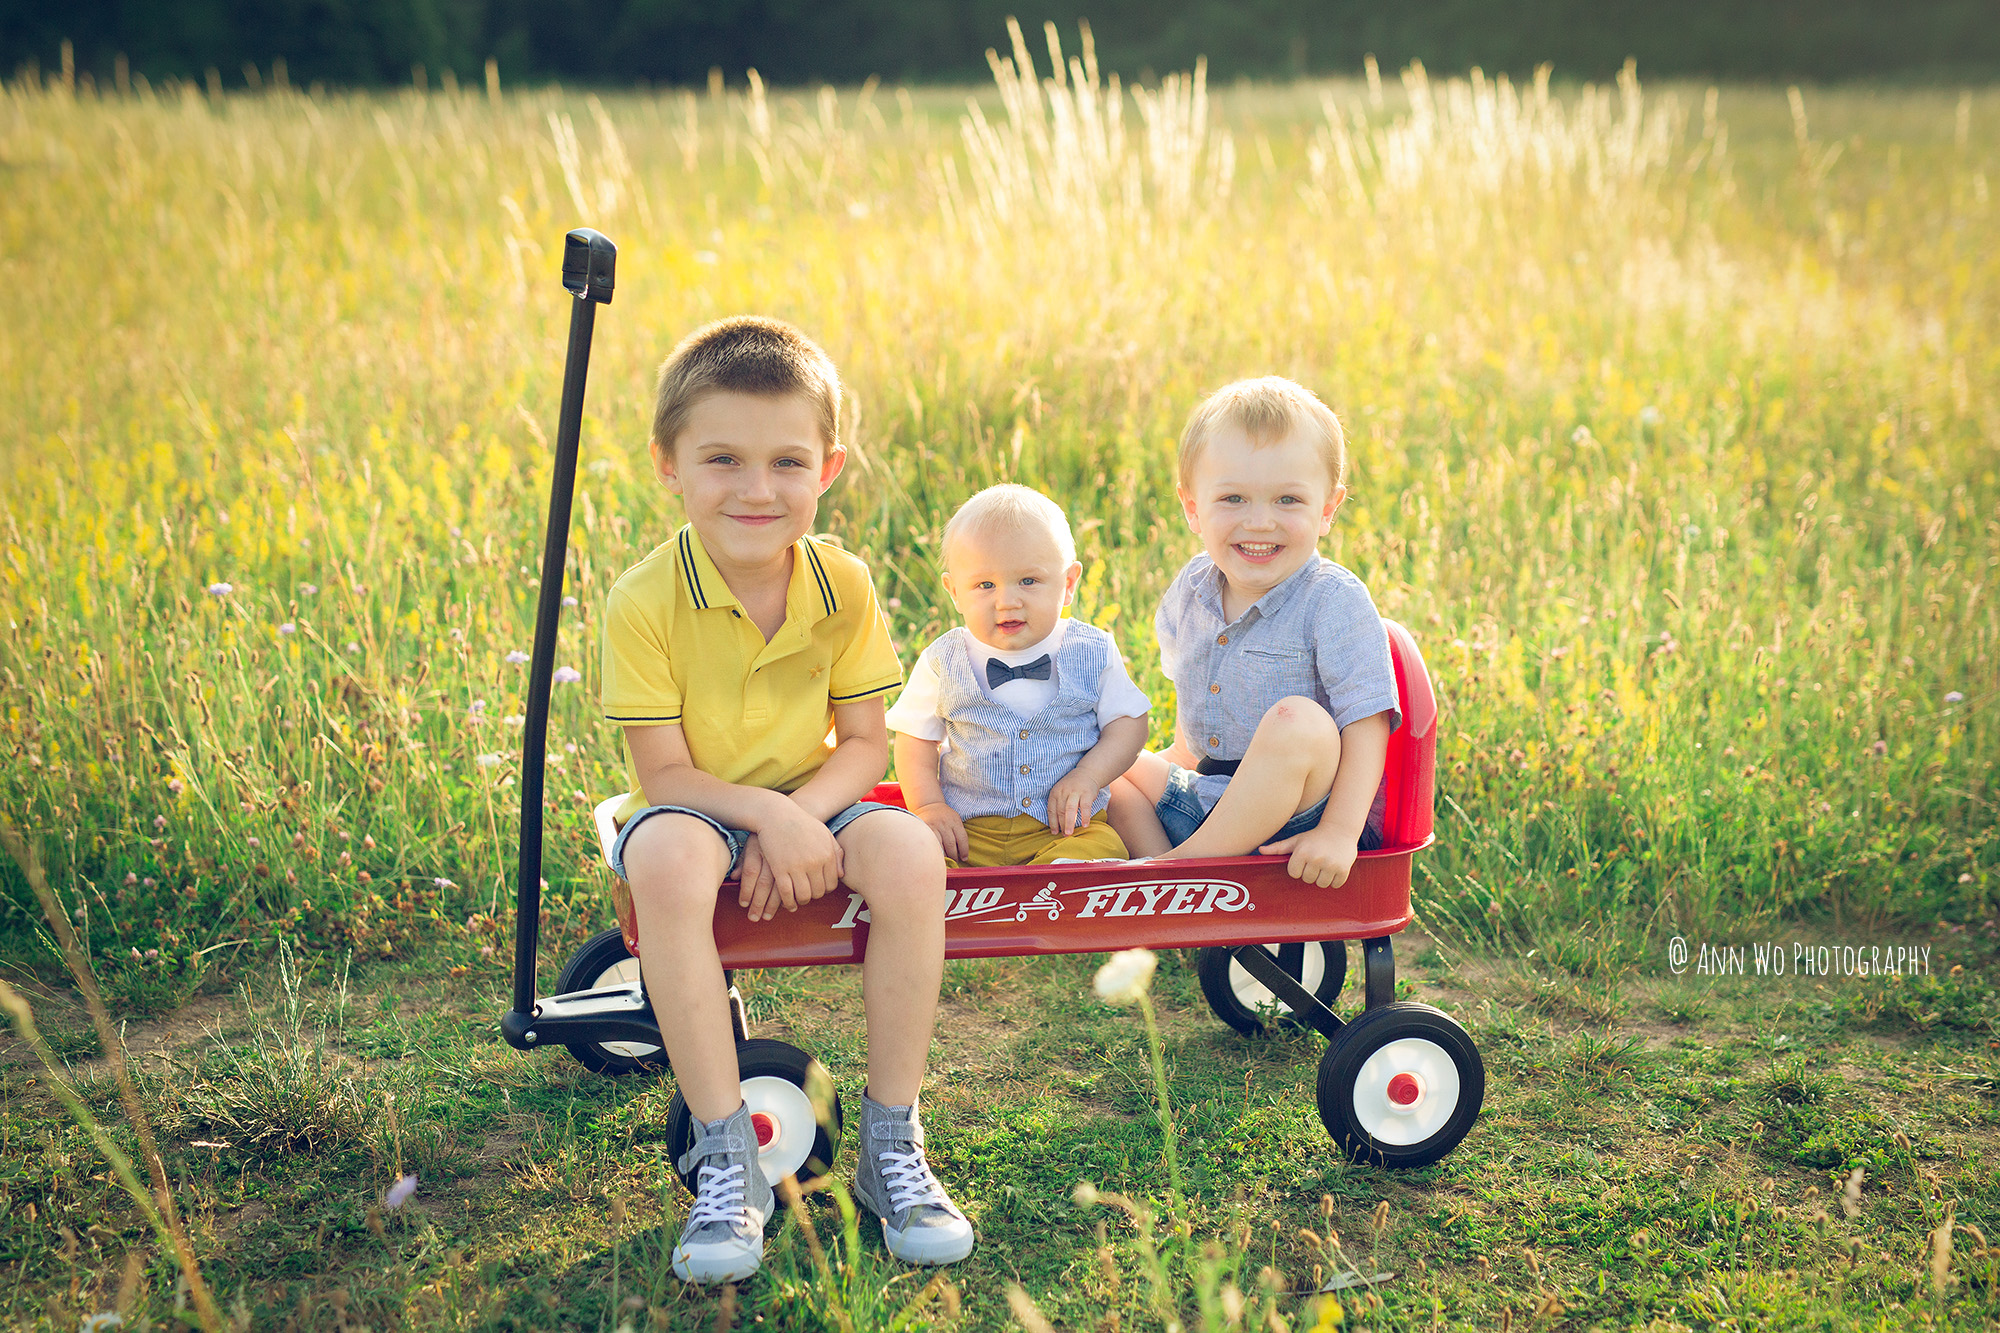 ann-wo-photographer-london-field-meadow-children-session-sunset-wagon-radio-flyer.jpg